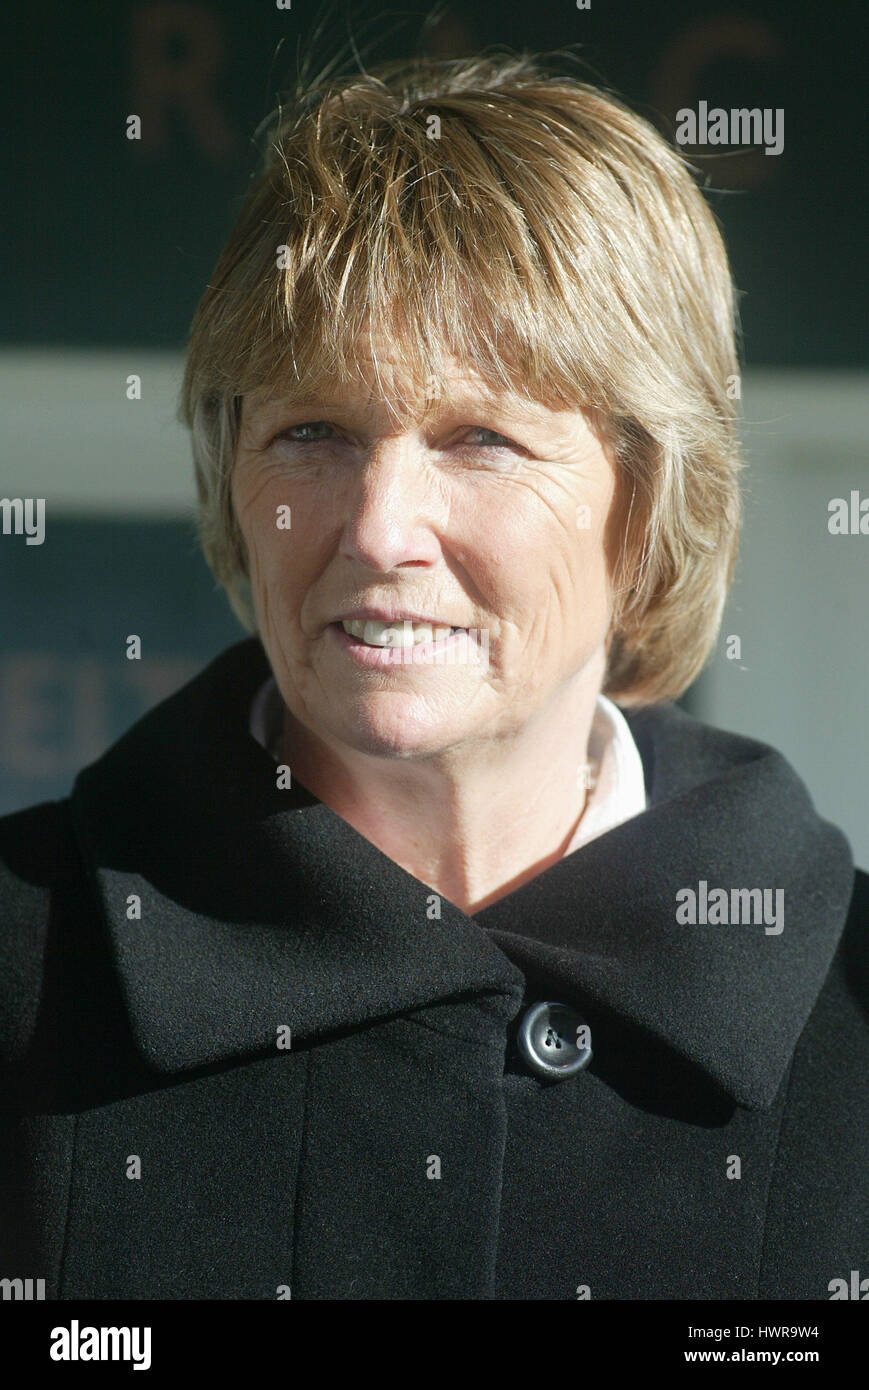 JESS HARRINGTON RACE HORSE TRAINER CHELTENHAM RACECOURSE CHELTENHAM 13 November 2004 - Stock Image